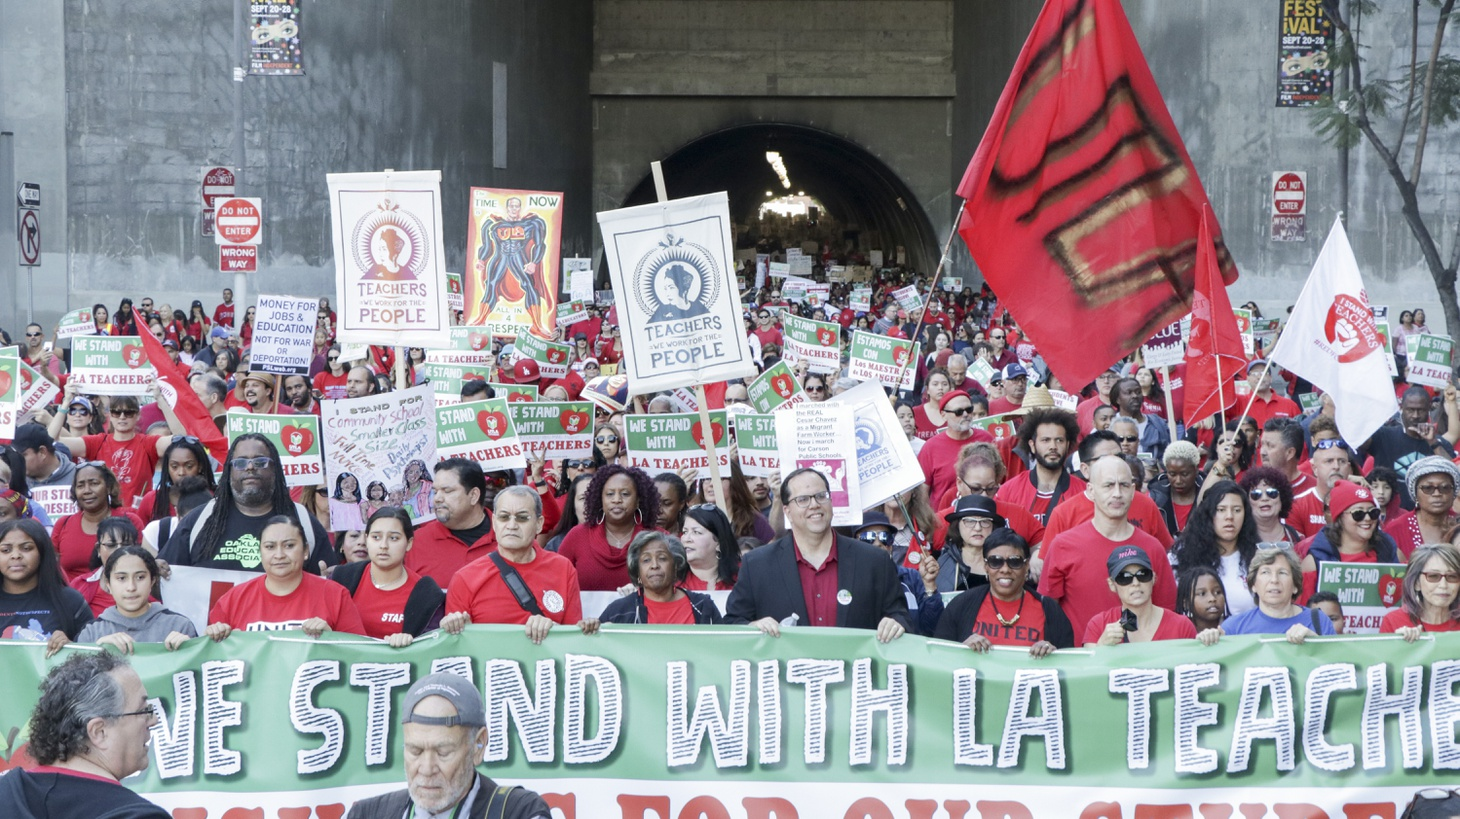 A rally organized by United Teachers Los Angeles.